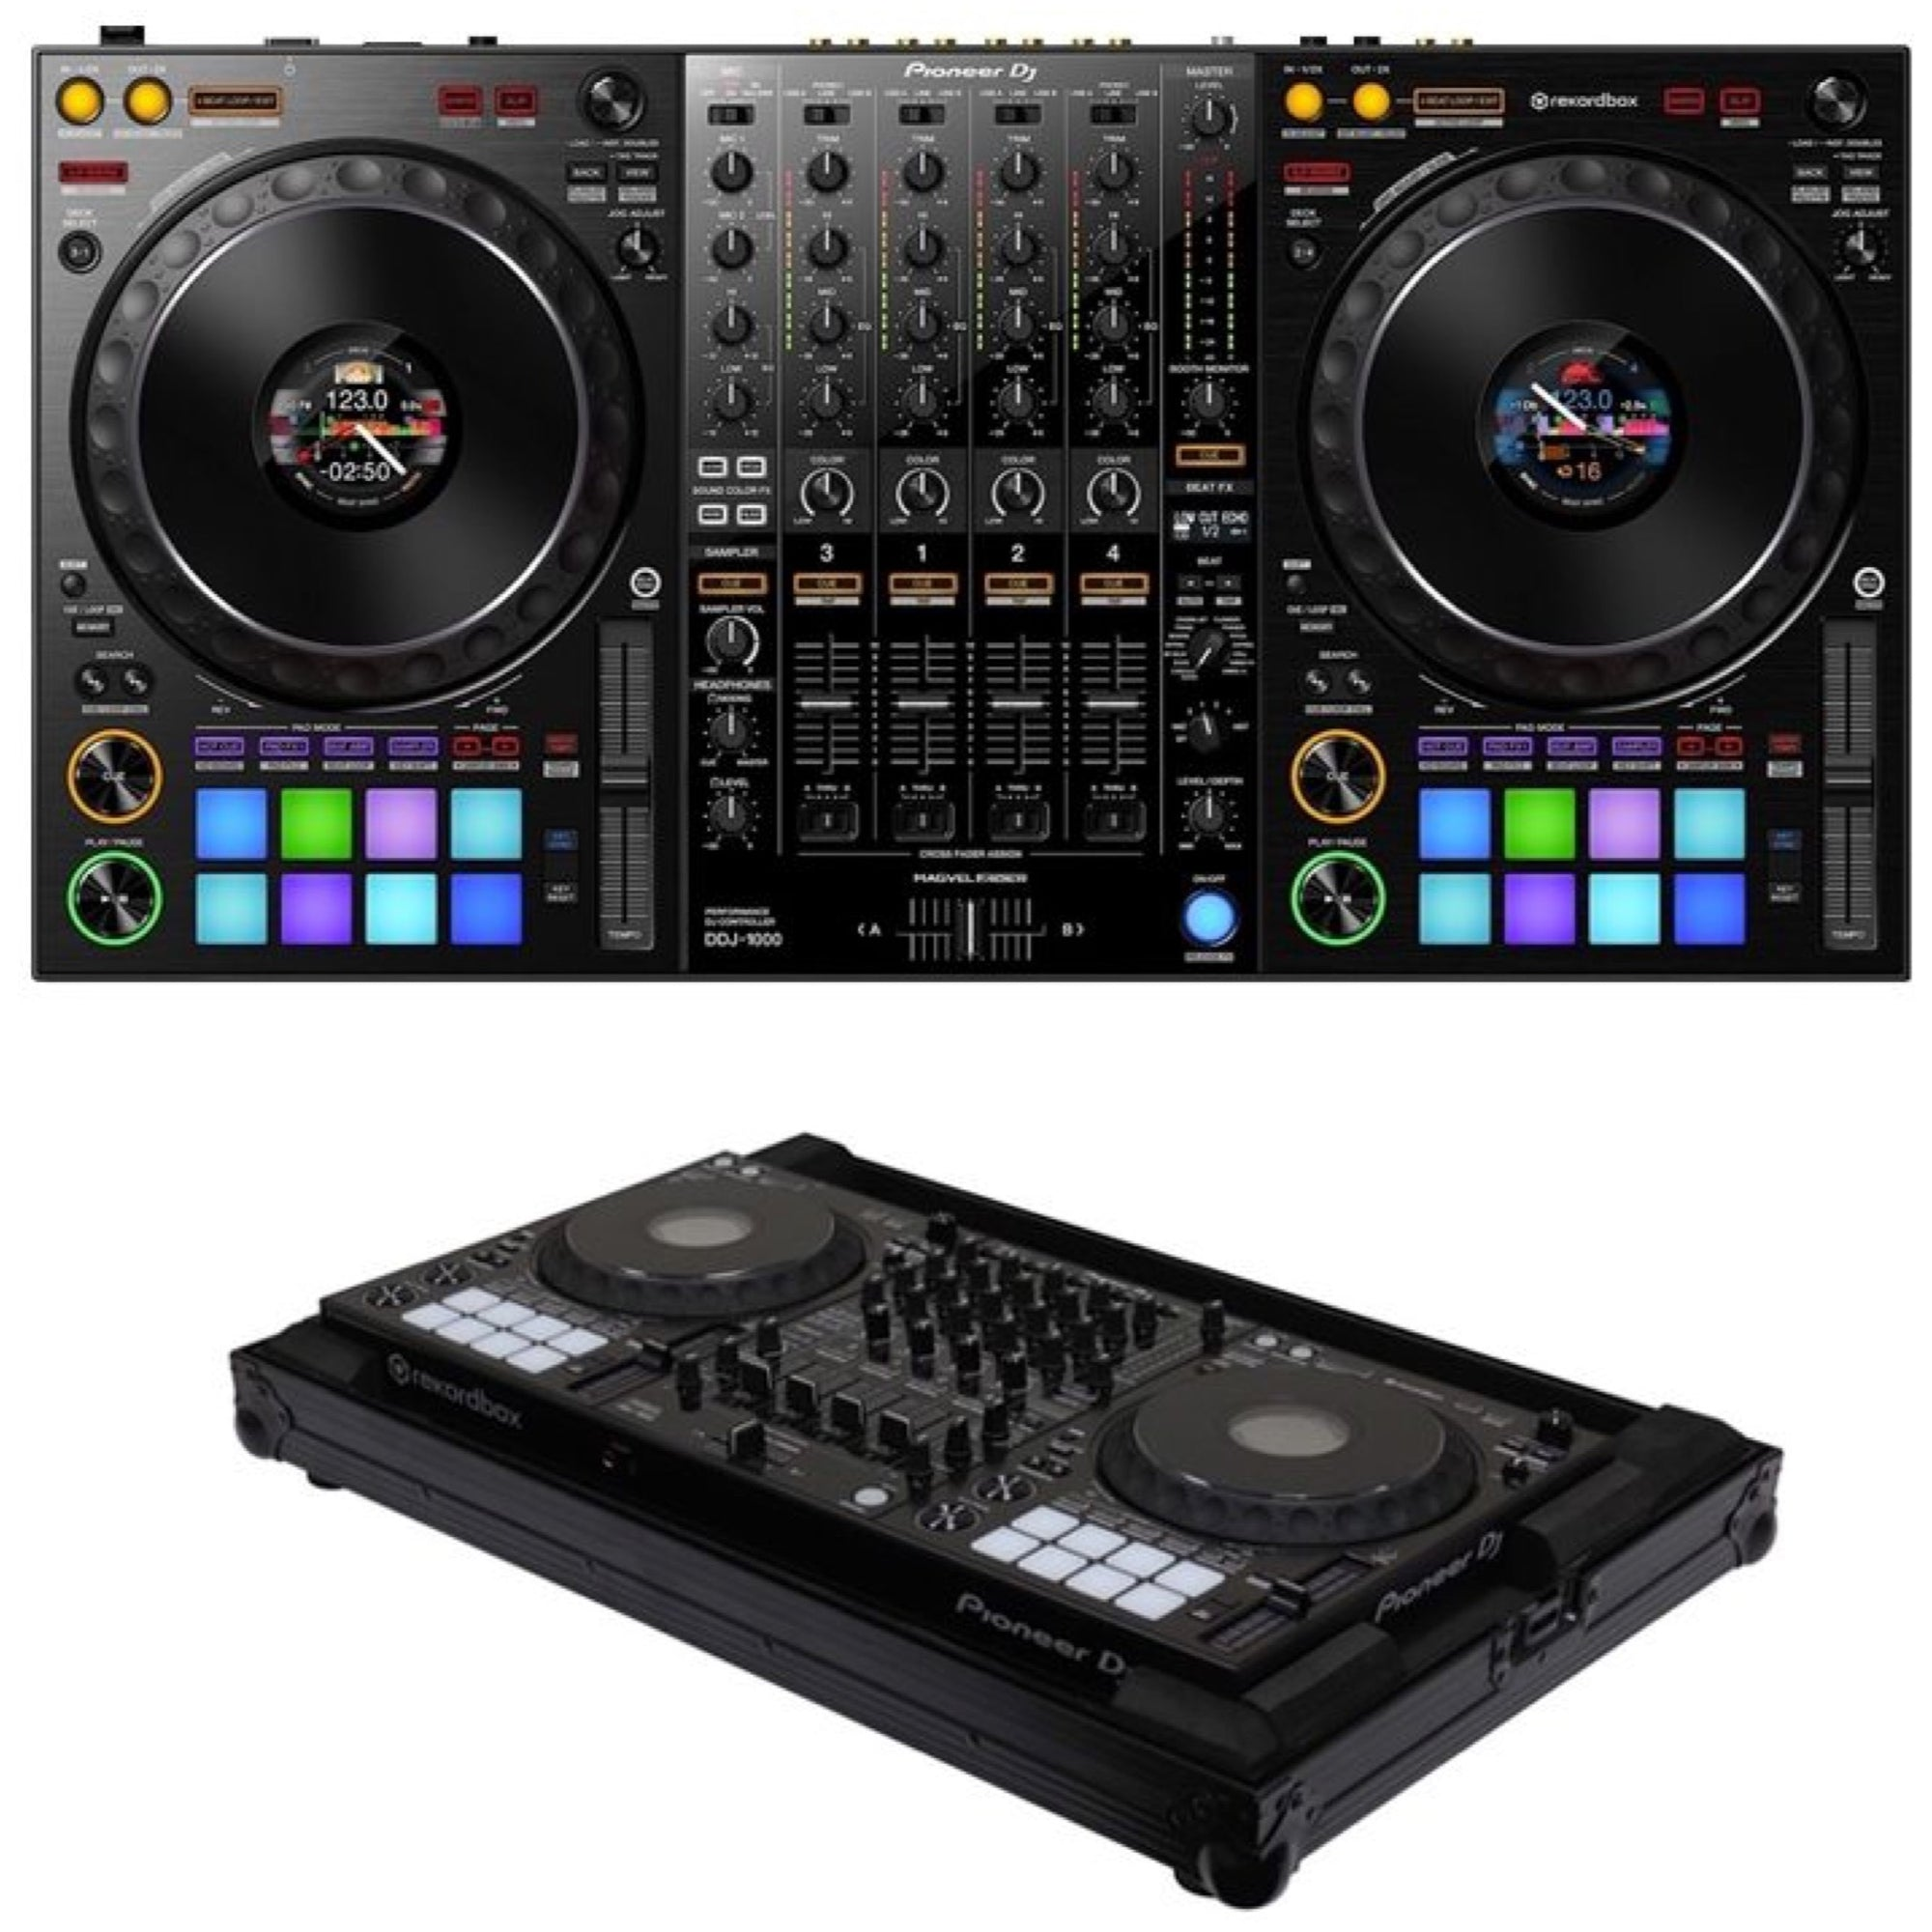 Pioneer DDJ-1000 Professional Controller for Rekordbox DJ, with Odyssey Case